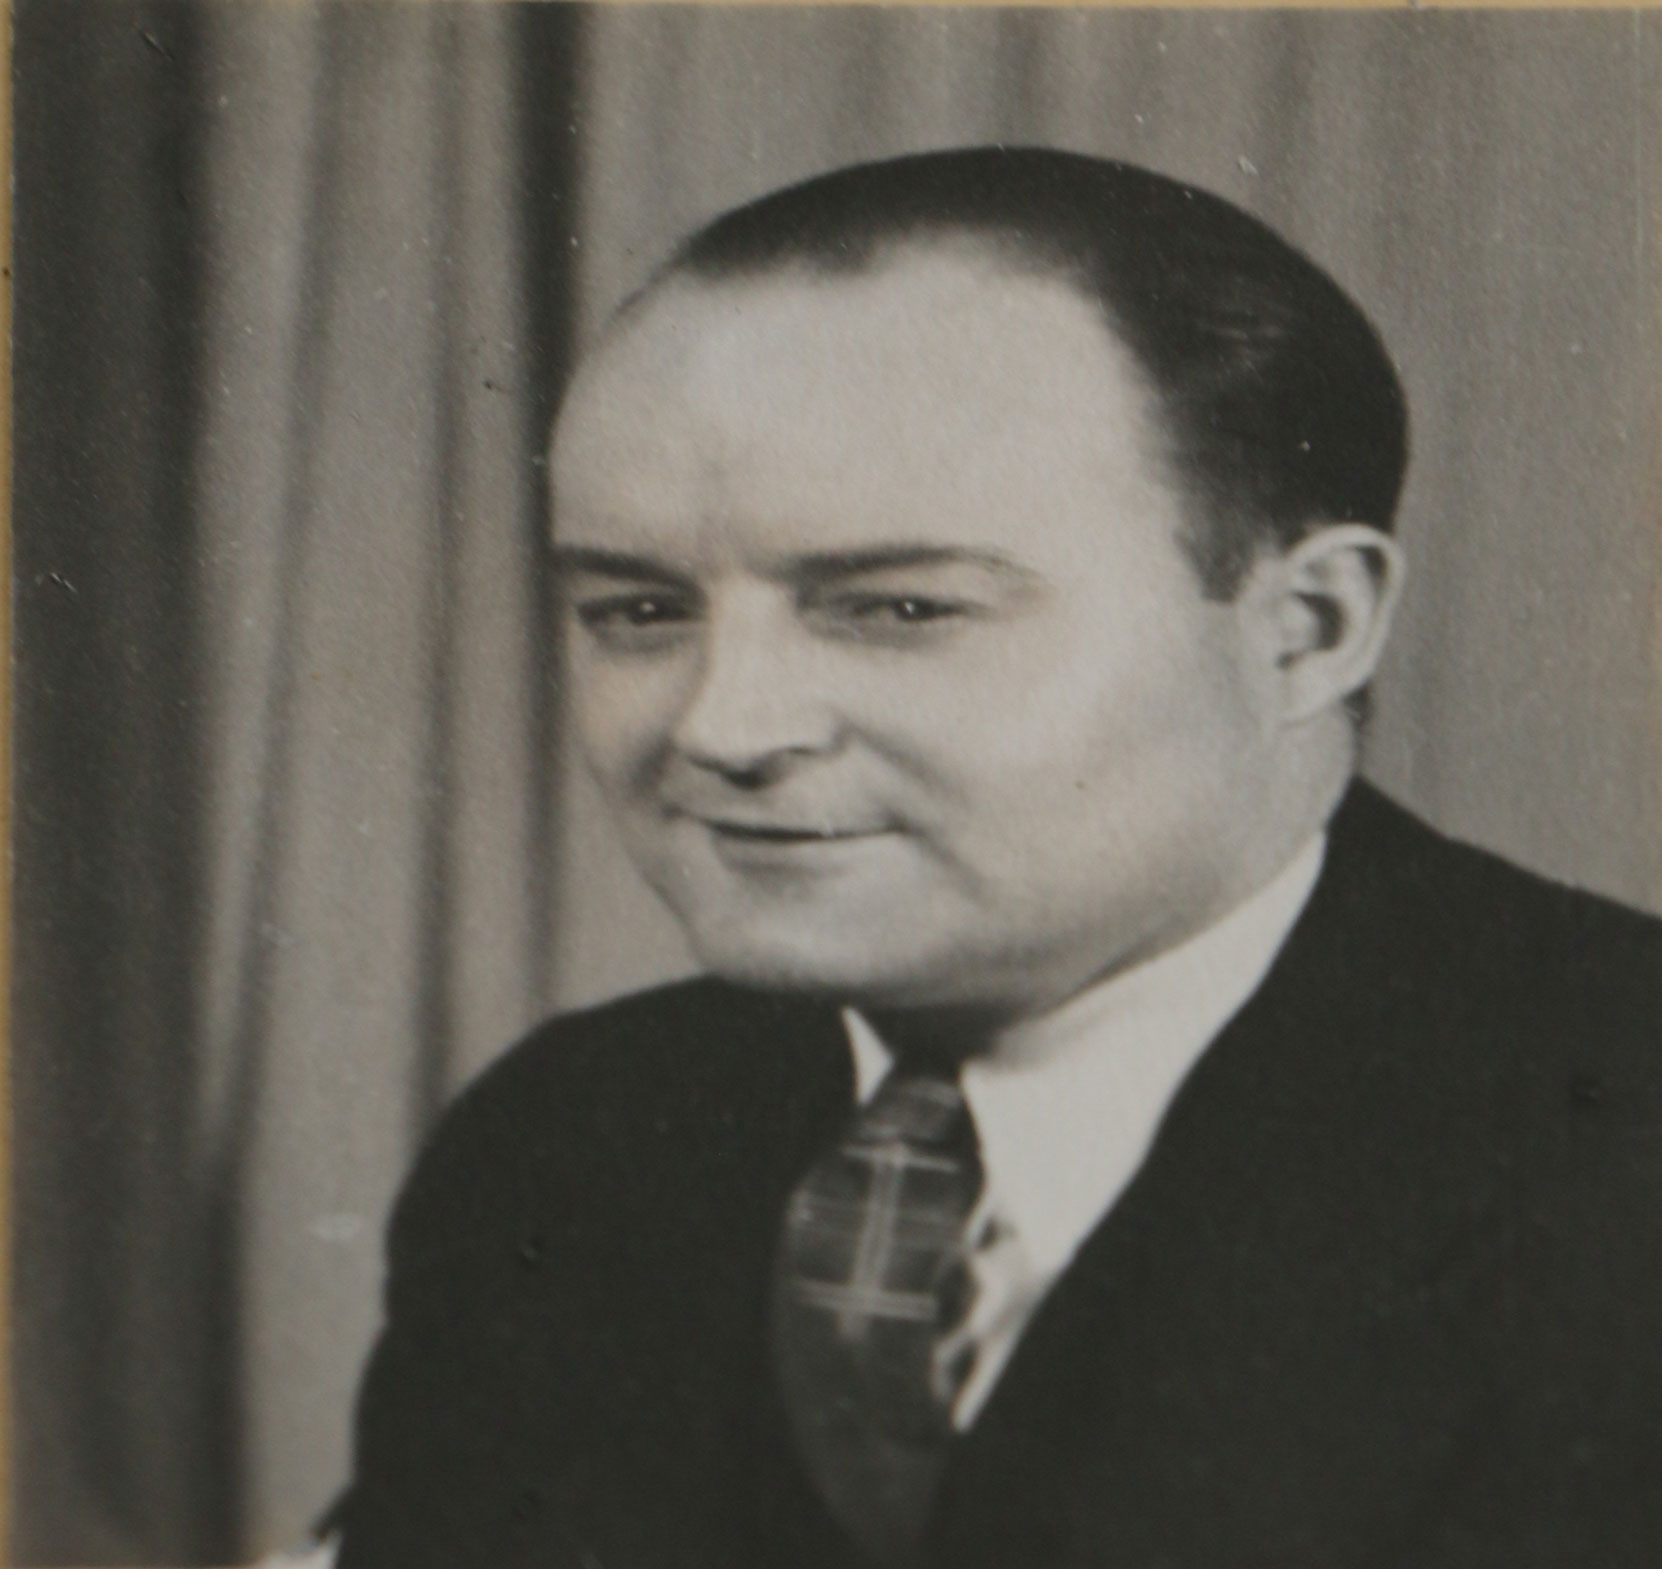 Walter Maxwell Hudson in 1939 (photo courtesy of Duncan Volunteer Fire Department)